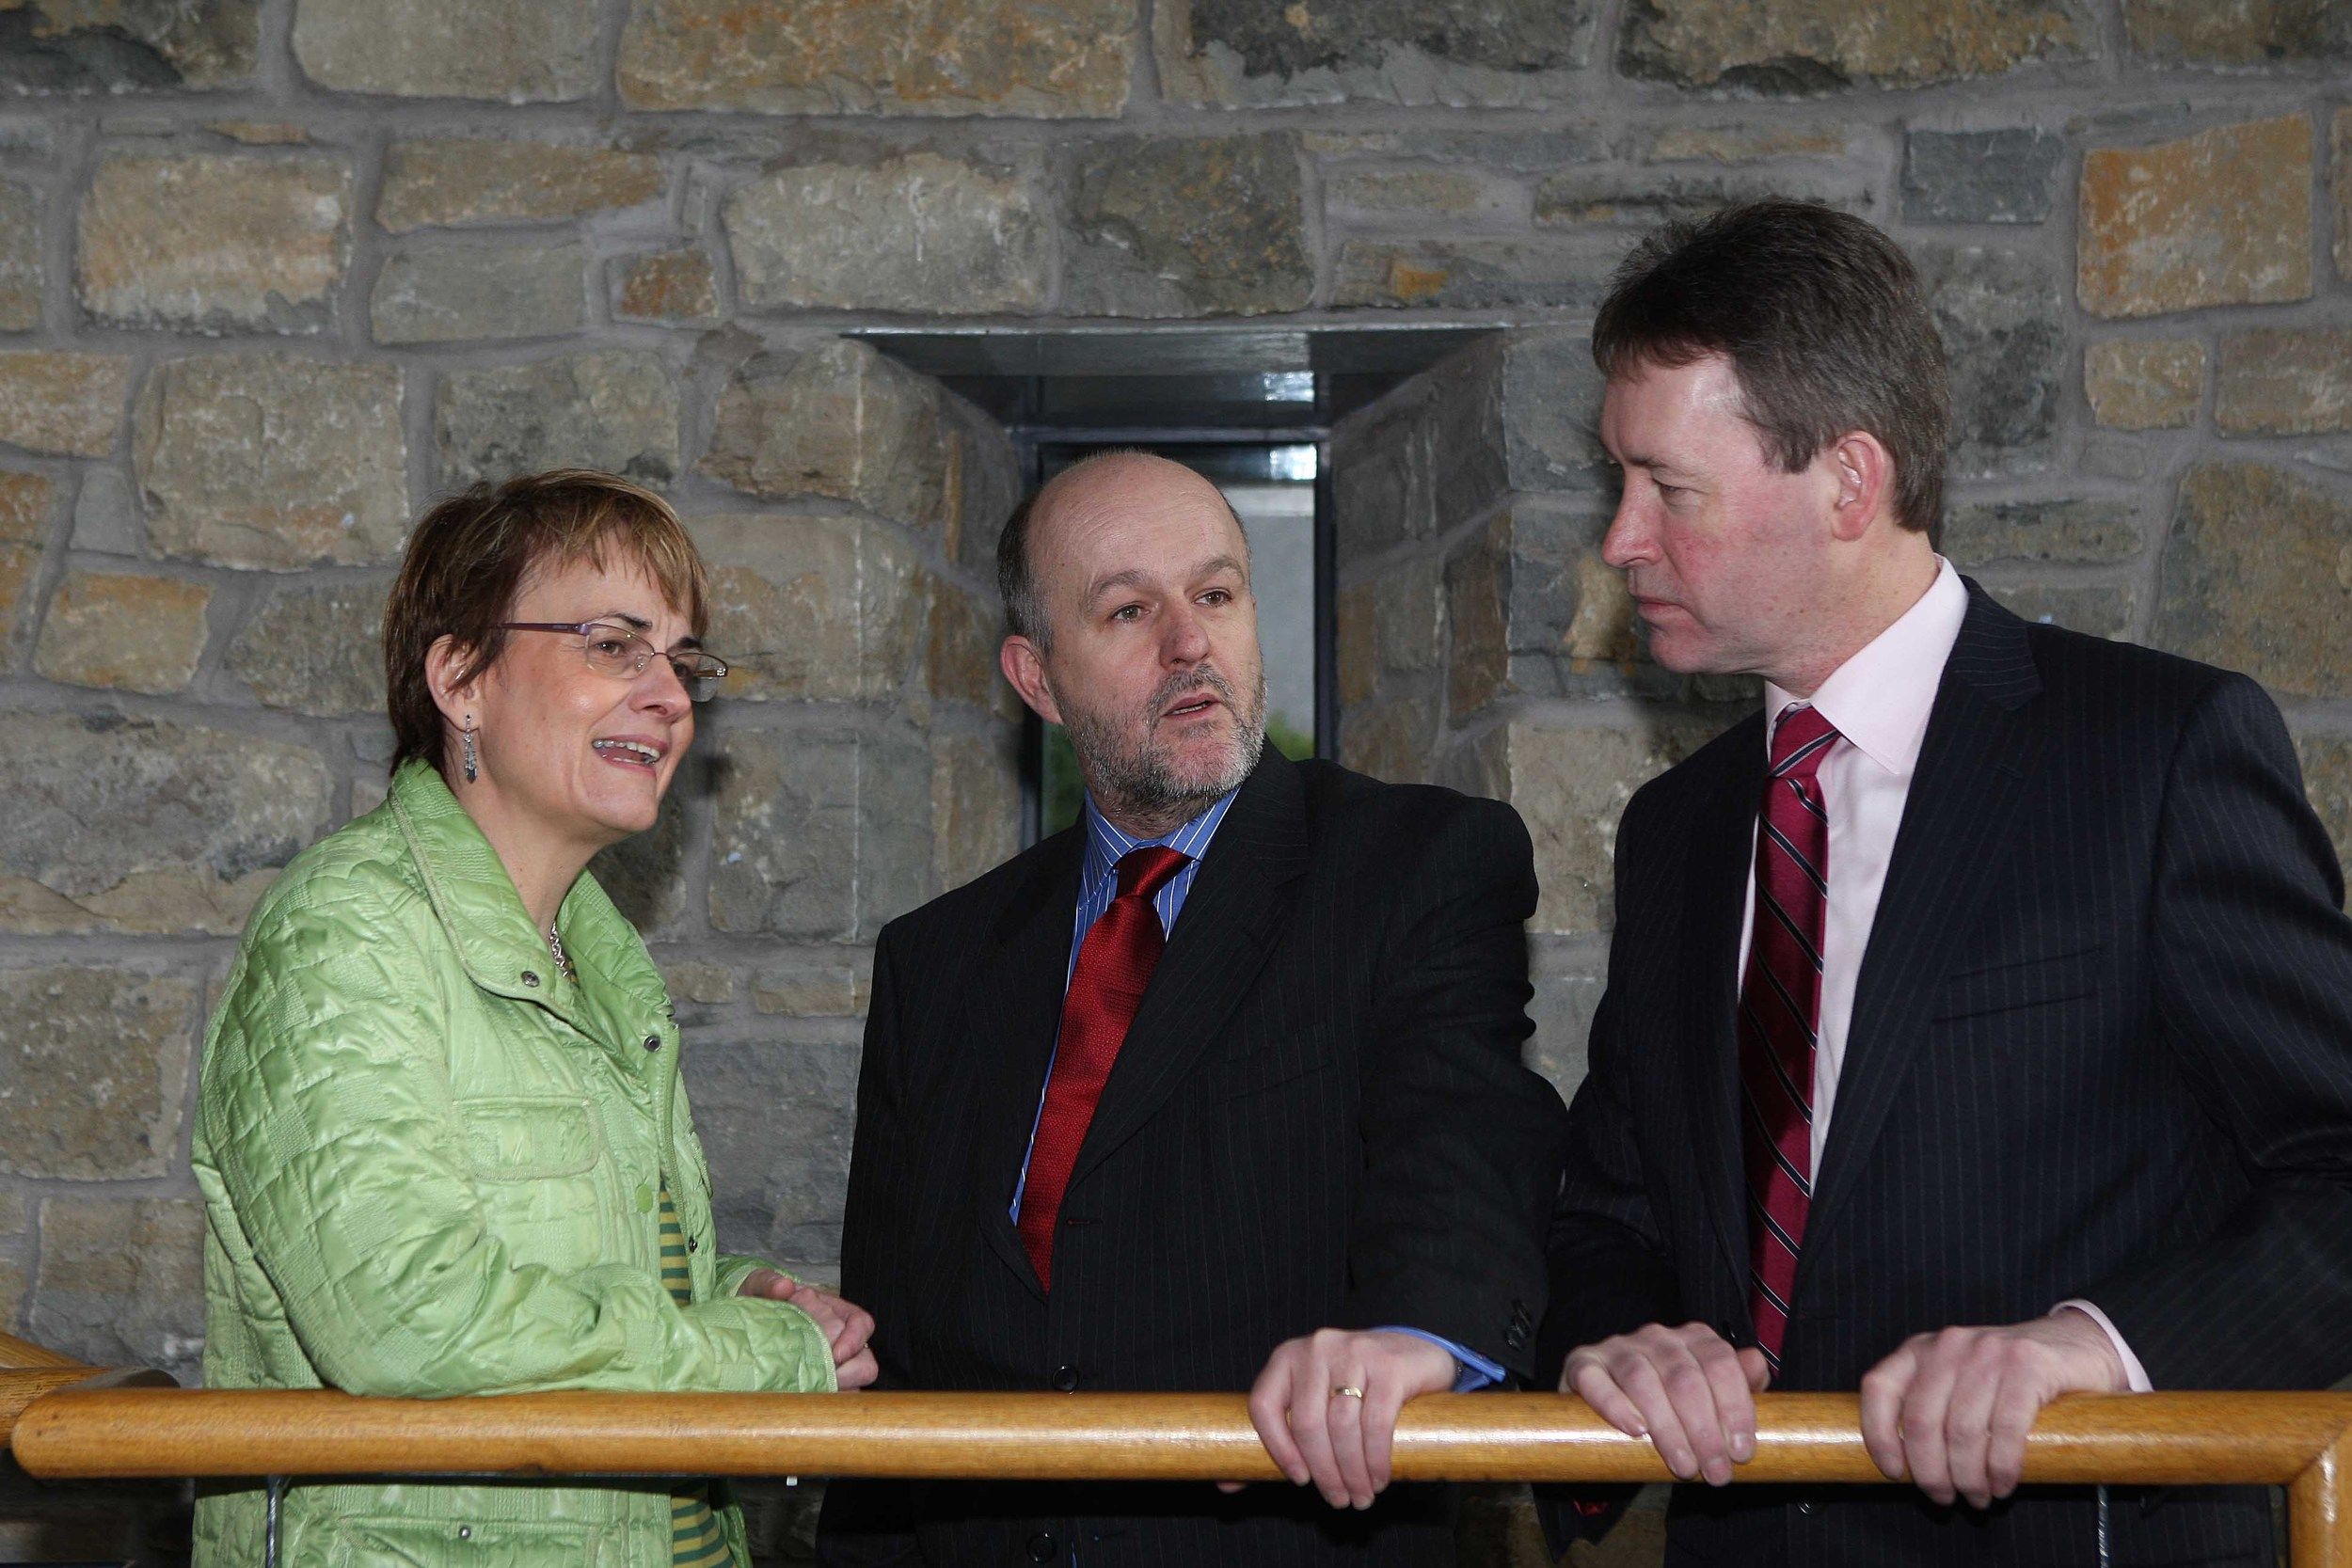 Minister for Social Development, Margaret Ritchie MLA and Mininster of Community, Rural and Gaeltacht, John Curran TD launch a cross border volunteering initiative - involving the Church of Ireland, Voluntary Arts Ireland and the Ulster Council of the GAA.